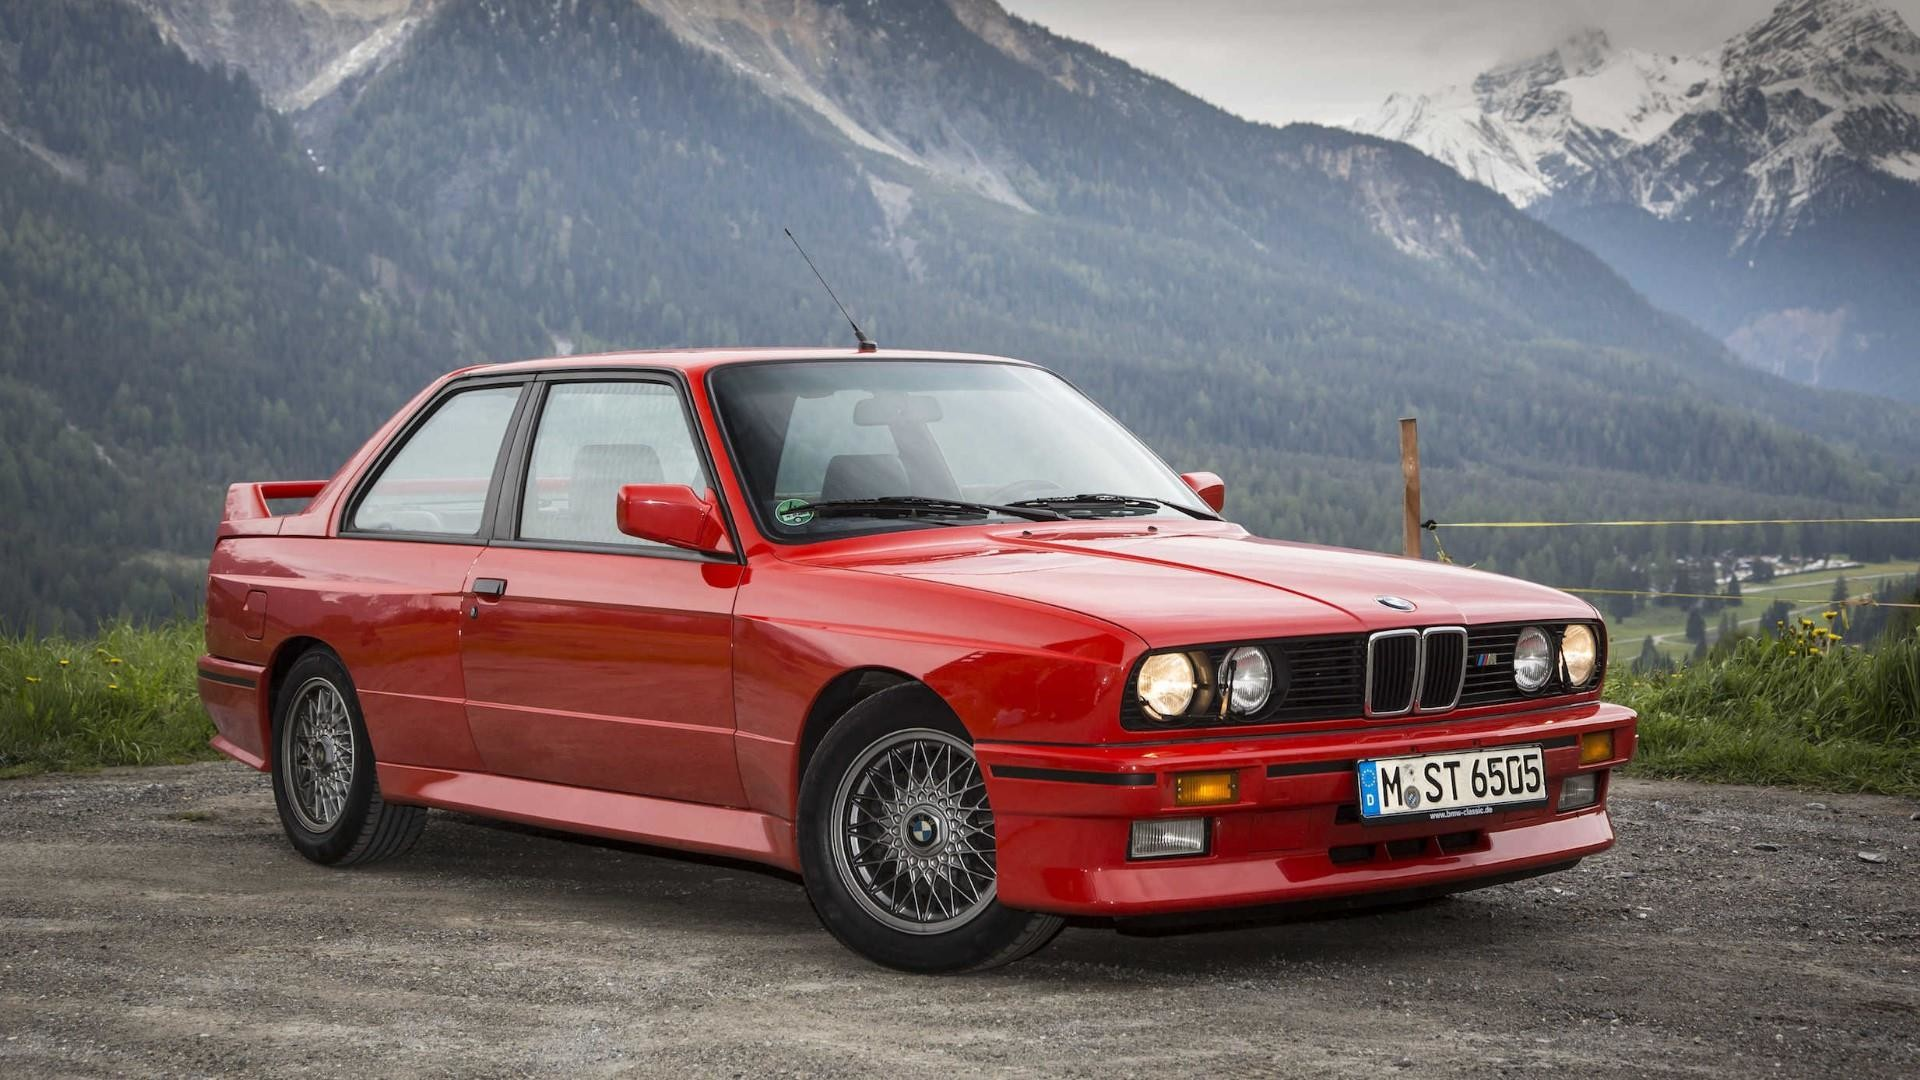 1920x1080 BMW E30 Wallpaper 15 - 1920 X 1080